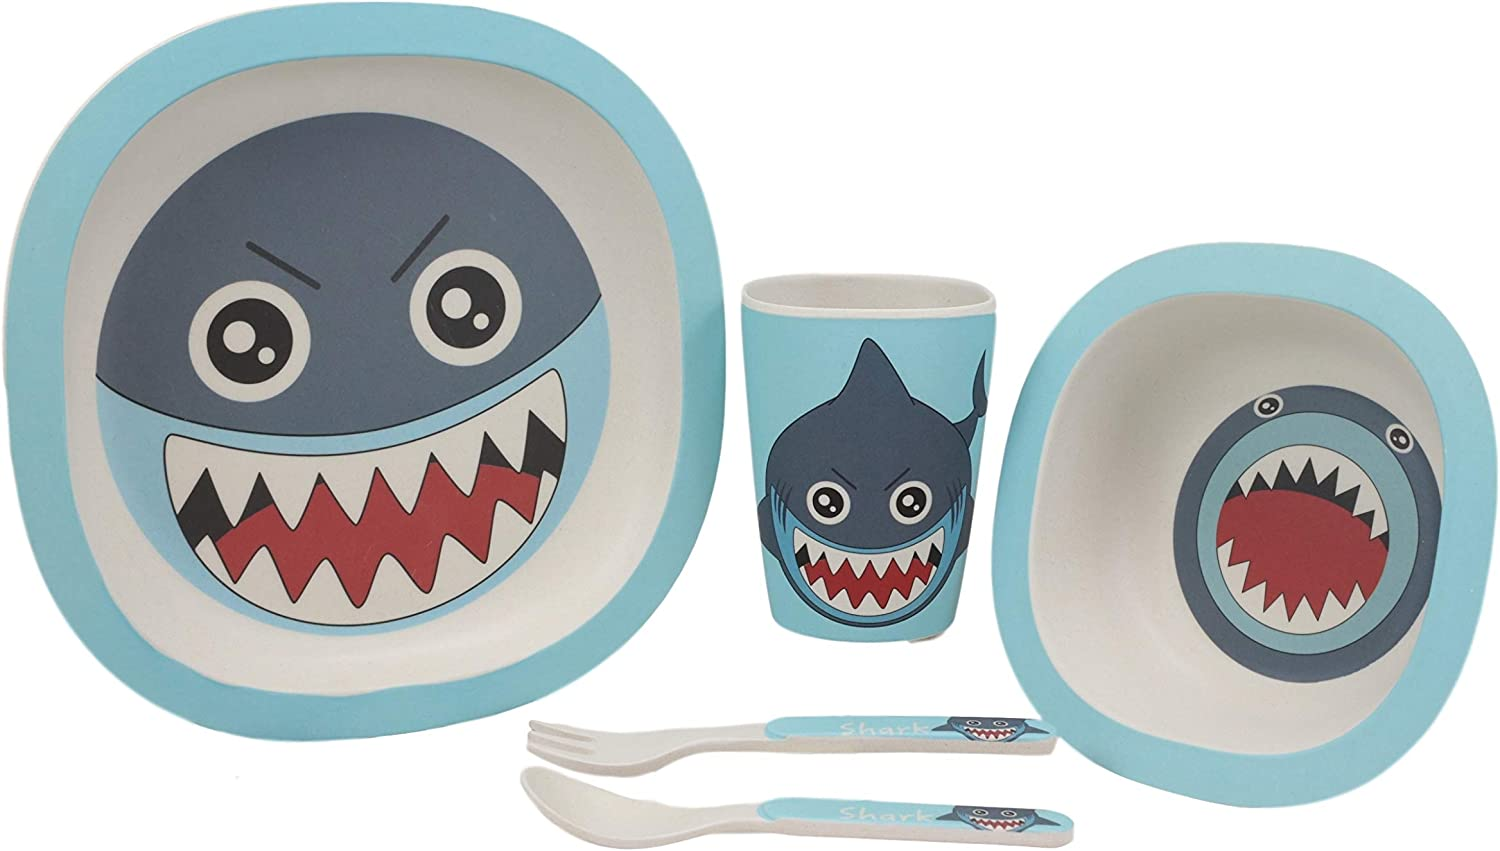 Ebros Whimsical Marine Great White Shark Kids Children Toddler Baby 5 Piece Dinnerware Set Made Of BPA Free Eco Friendly Organic Bamboo Fiber Fork Spoon Plate Bowl And Cup Ideal Baby Shower Gift